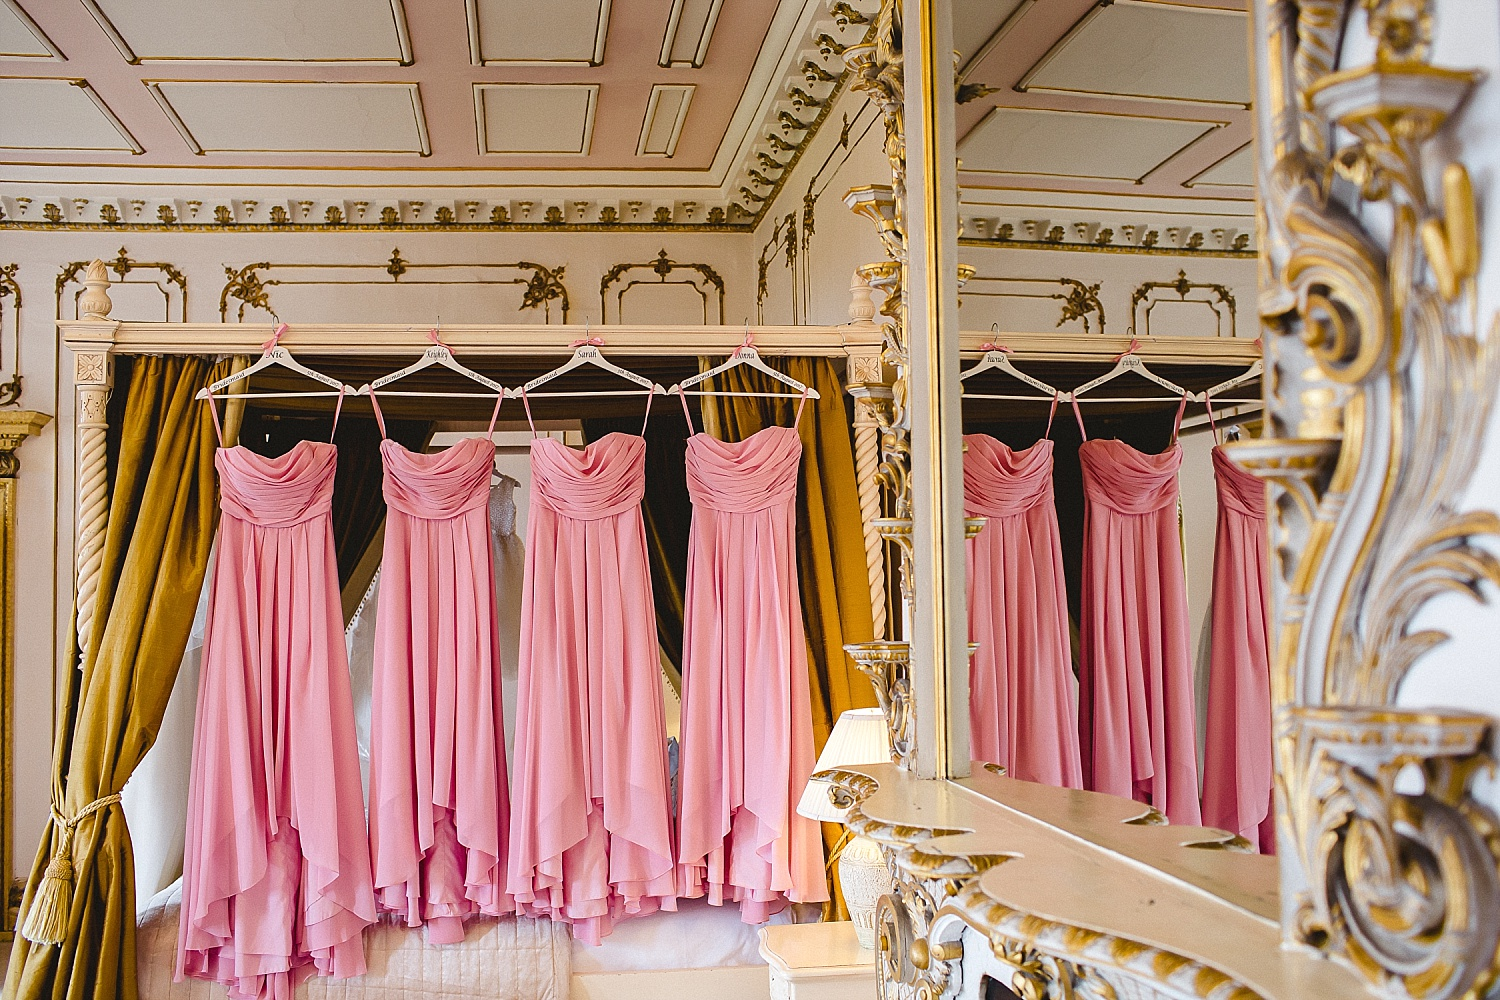 Gosfield Hall Wedding Photographer - Bridesmaids dresses in the Bridal Suite